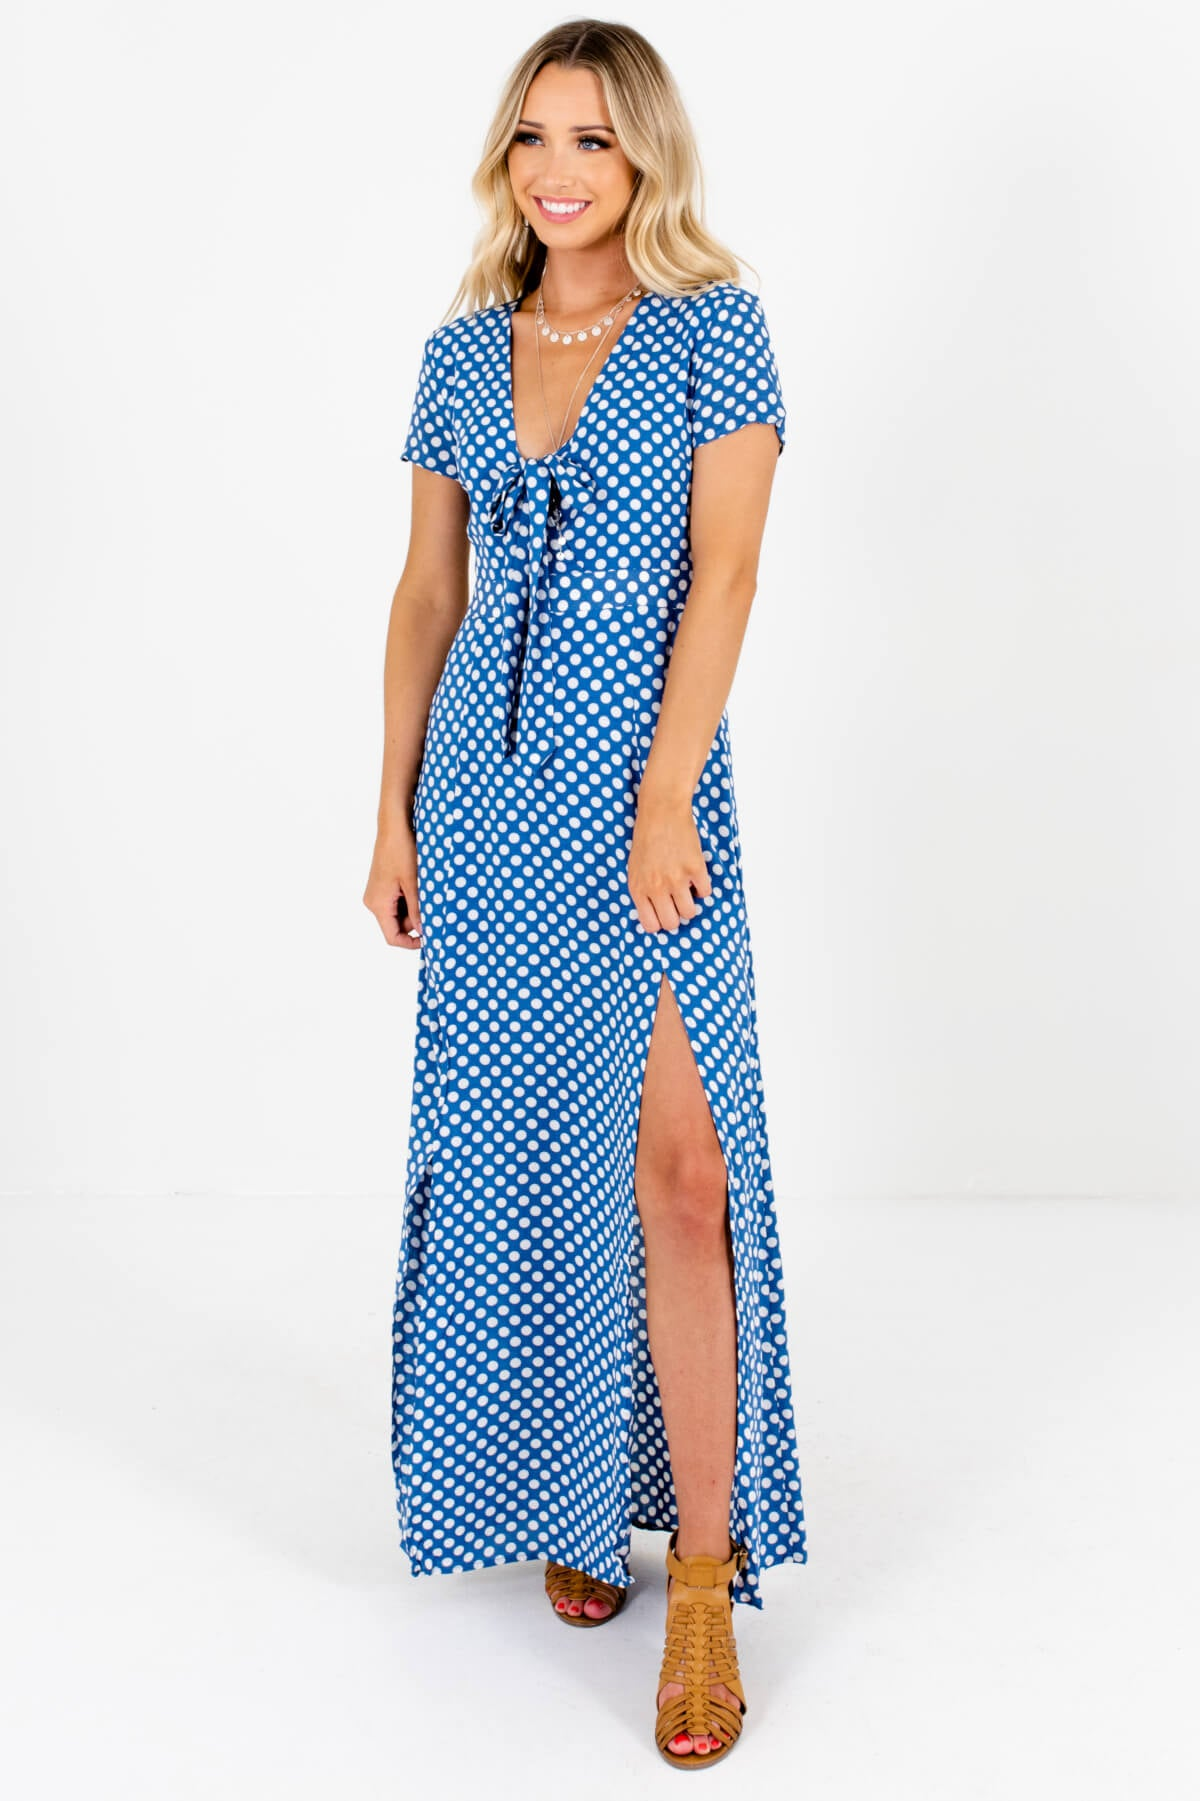 Blue White Polka Dot Patterned Boutique Maxi Dresses for Women